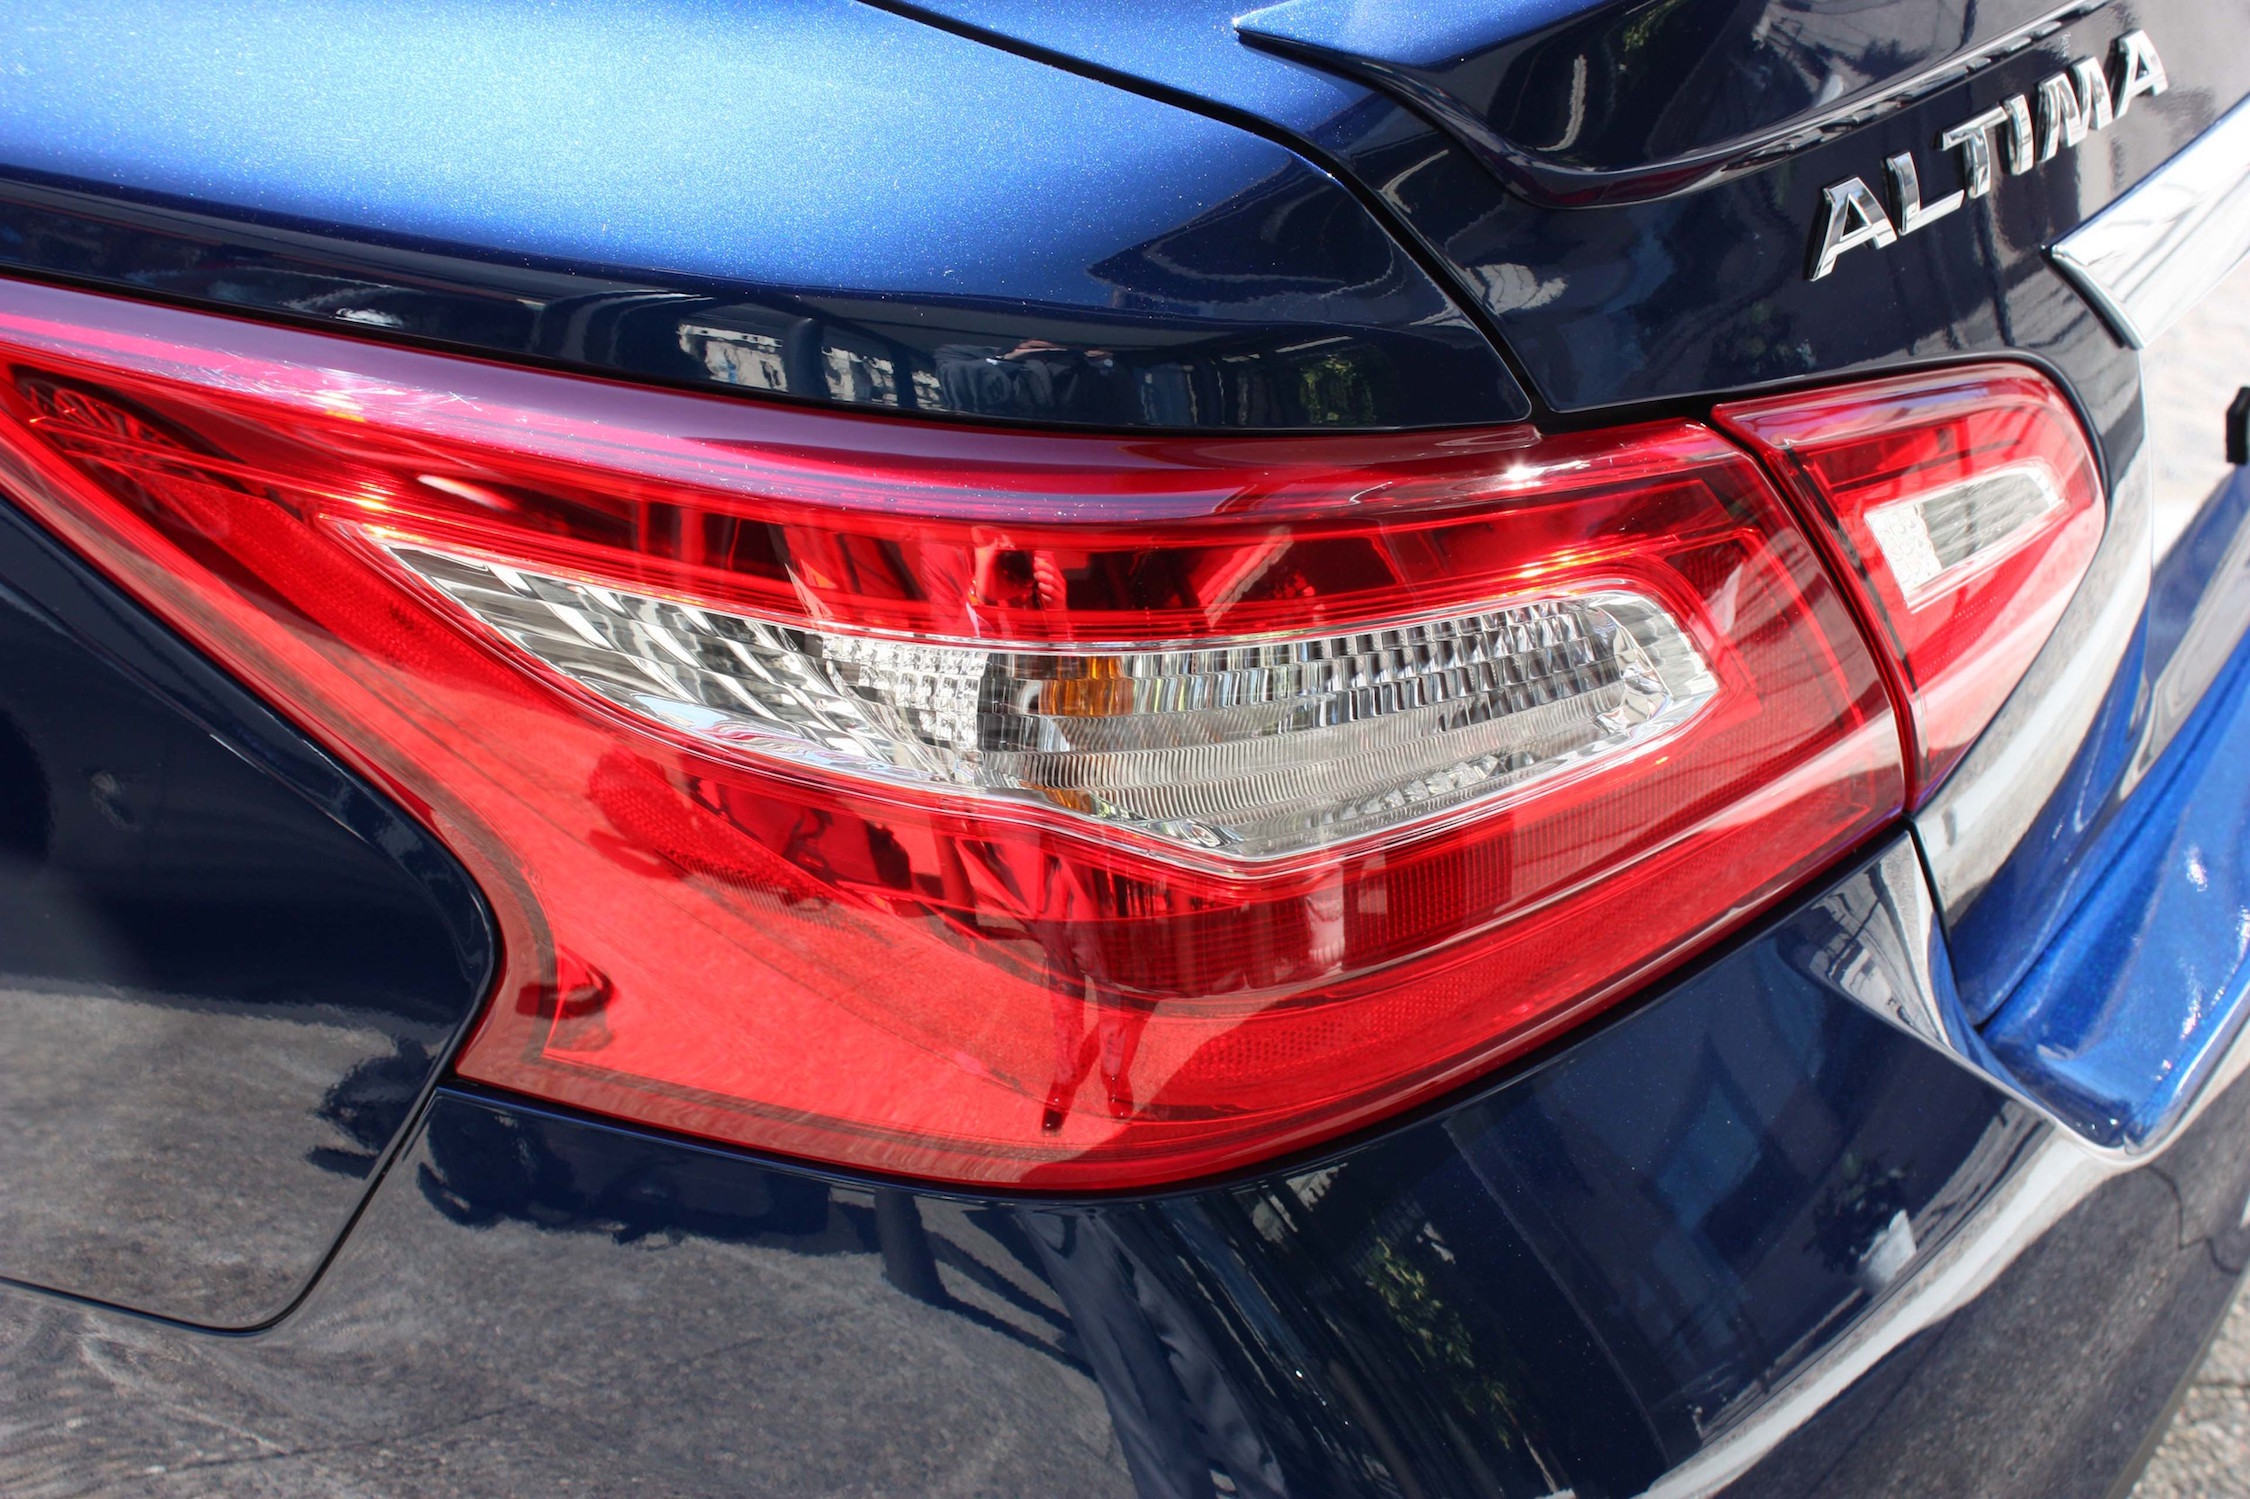 2016 Nissan Altima Exterior Taillight (View 2 of 20)